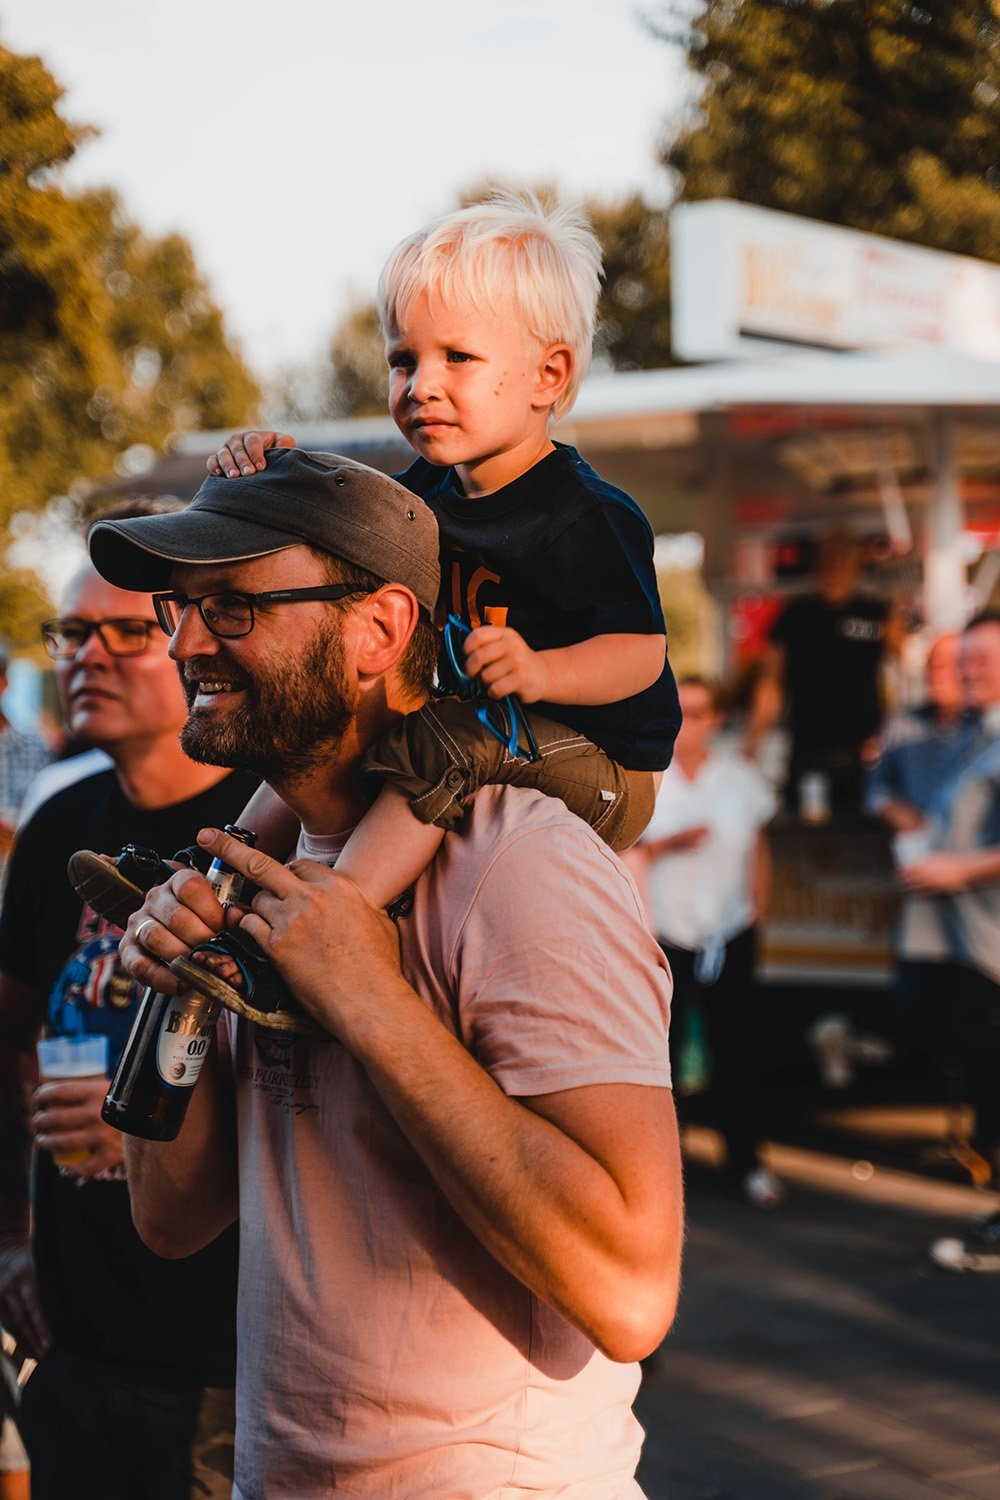 Father with his child on his shoulders. I Image: Pexels.